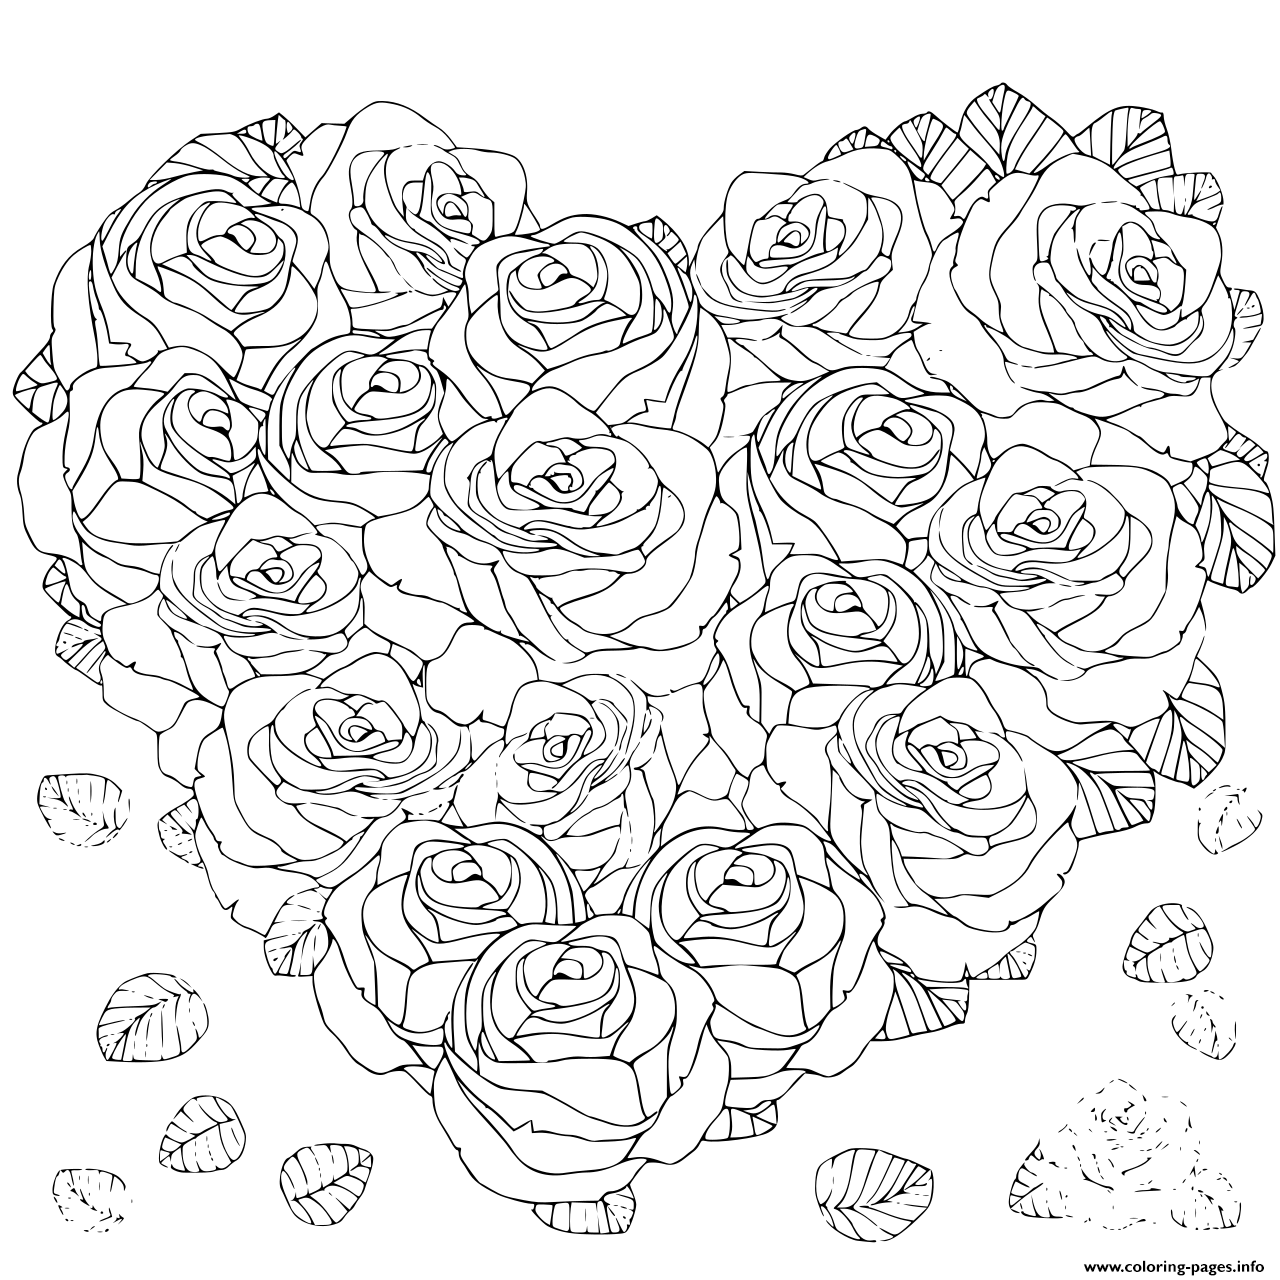 Roses and Hearts Coloring Pages - Best Coloring Pages For Kids | 1280x1280